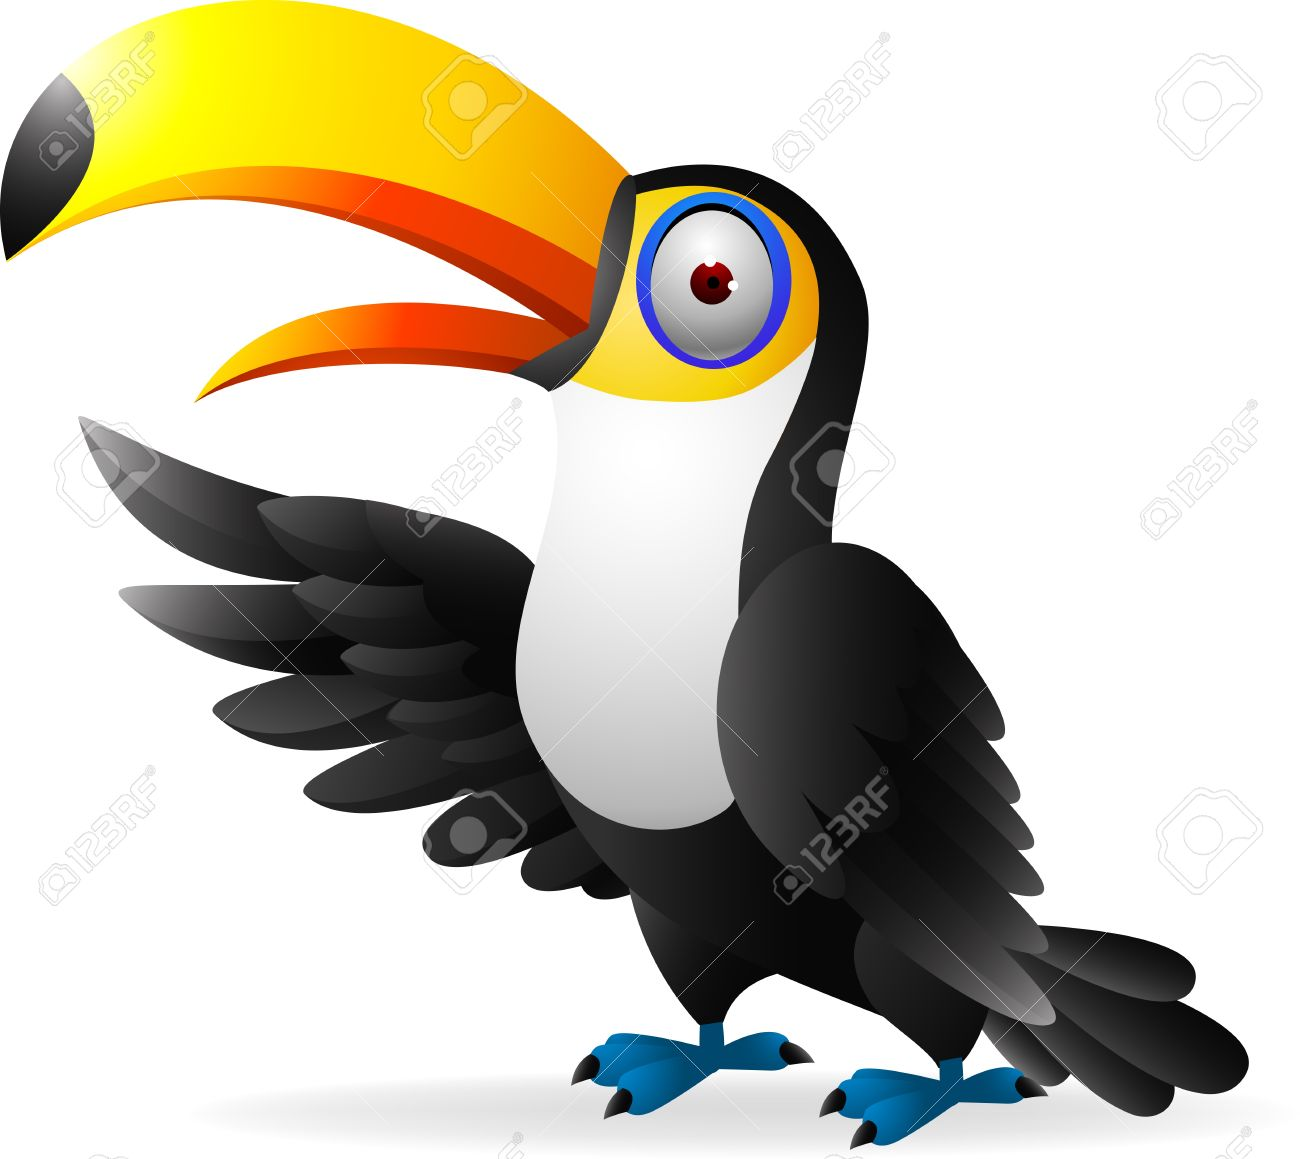 Illustratration Of Toucan Bird Waving Royalty Free Cliparts.